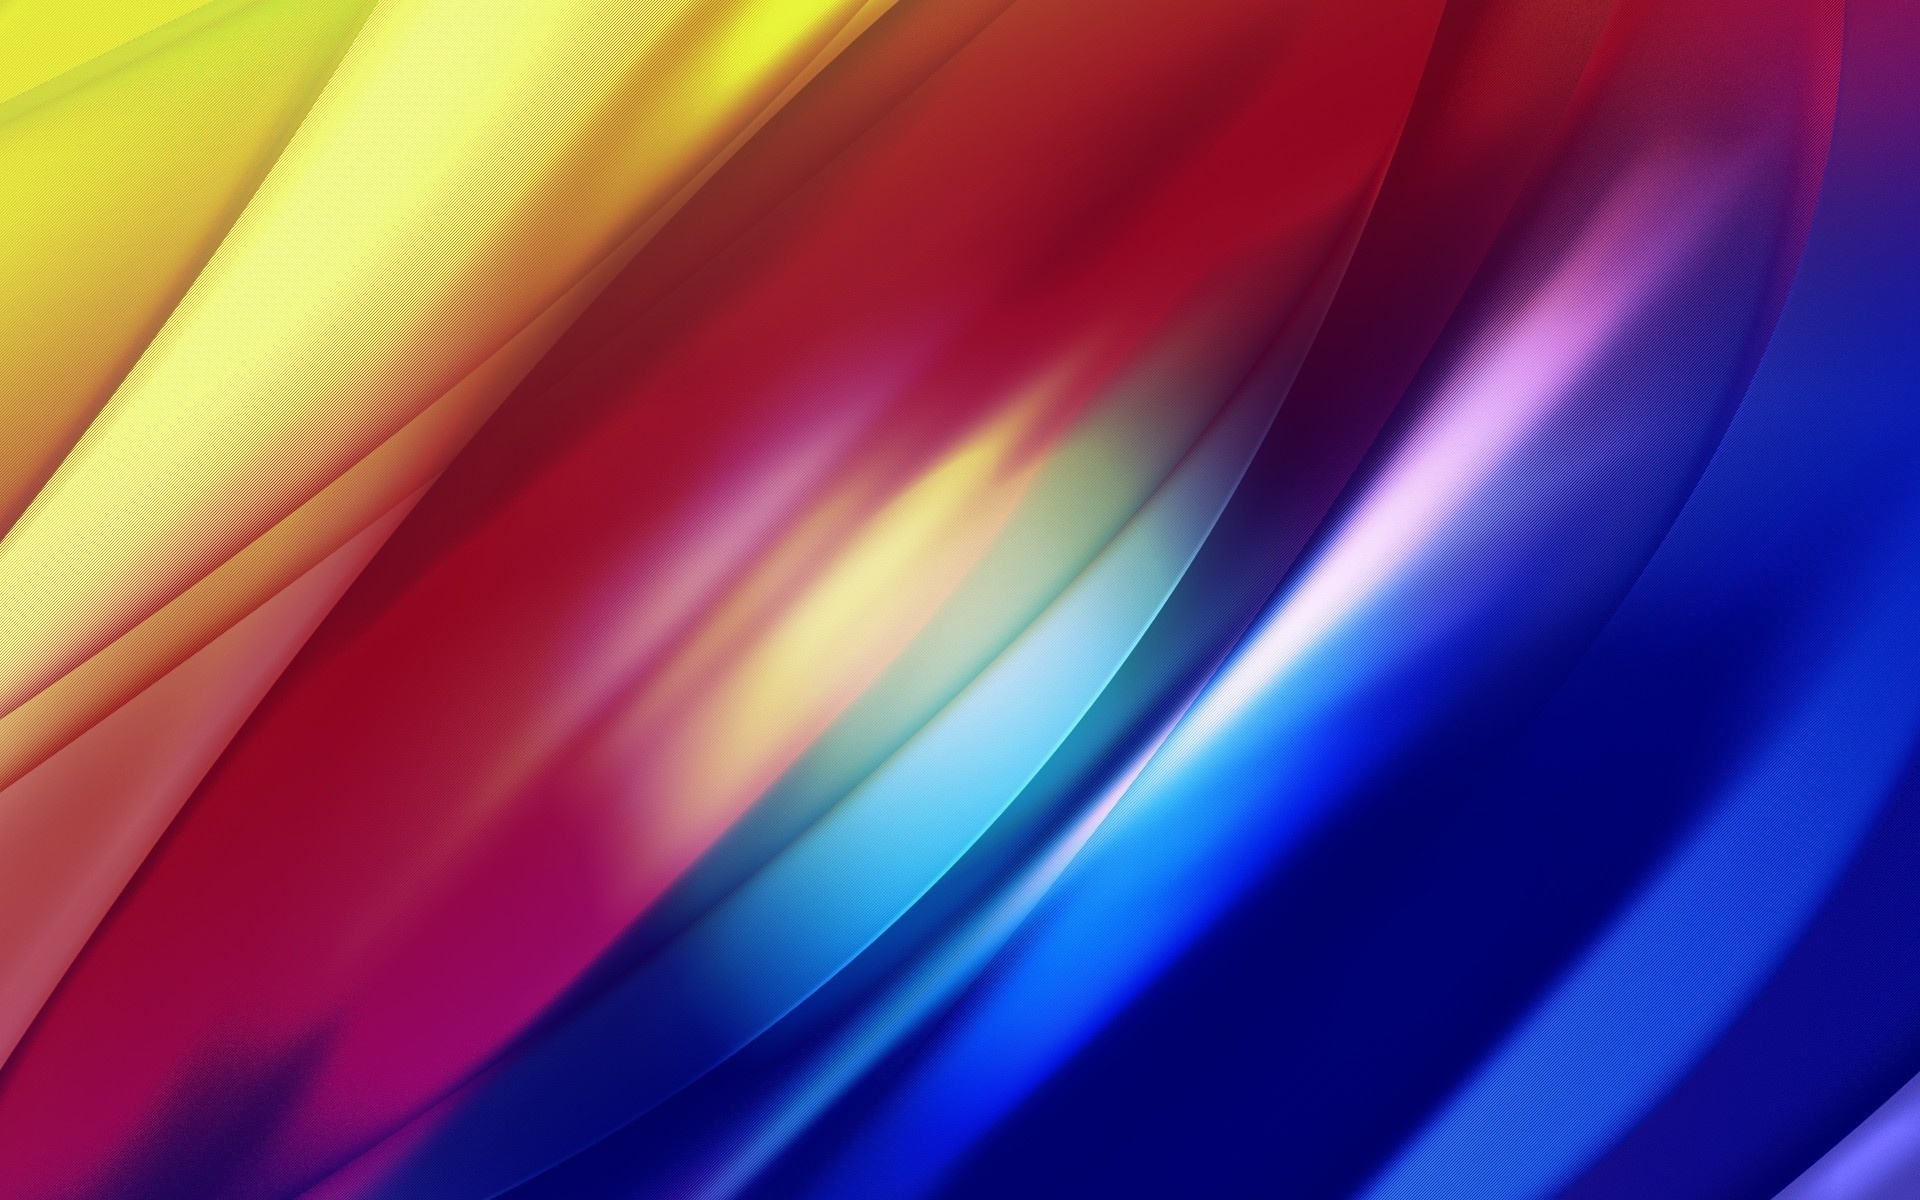 abstract waves wallpaper 36338